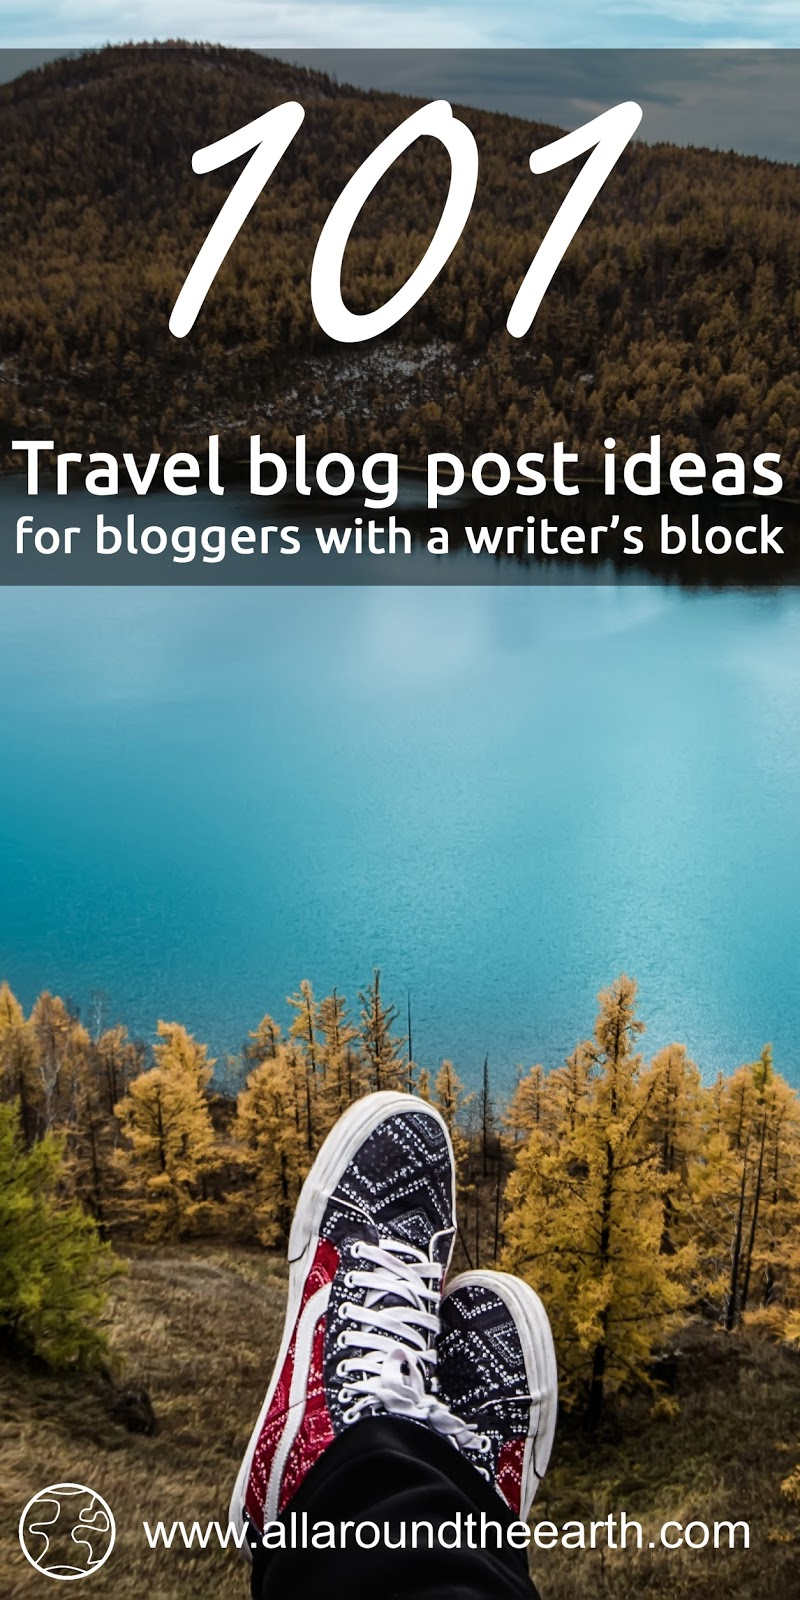 What to write about? 101 travel blog post ideas for bloggers with a writer's block